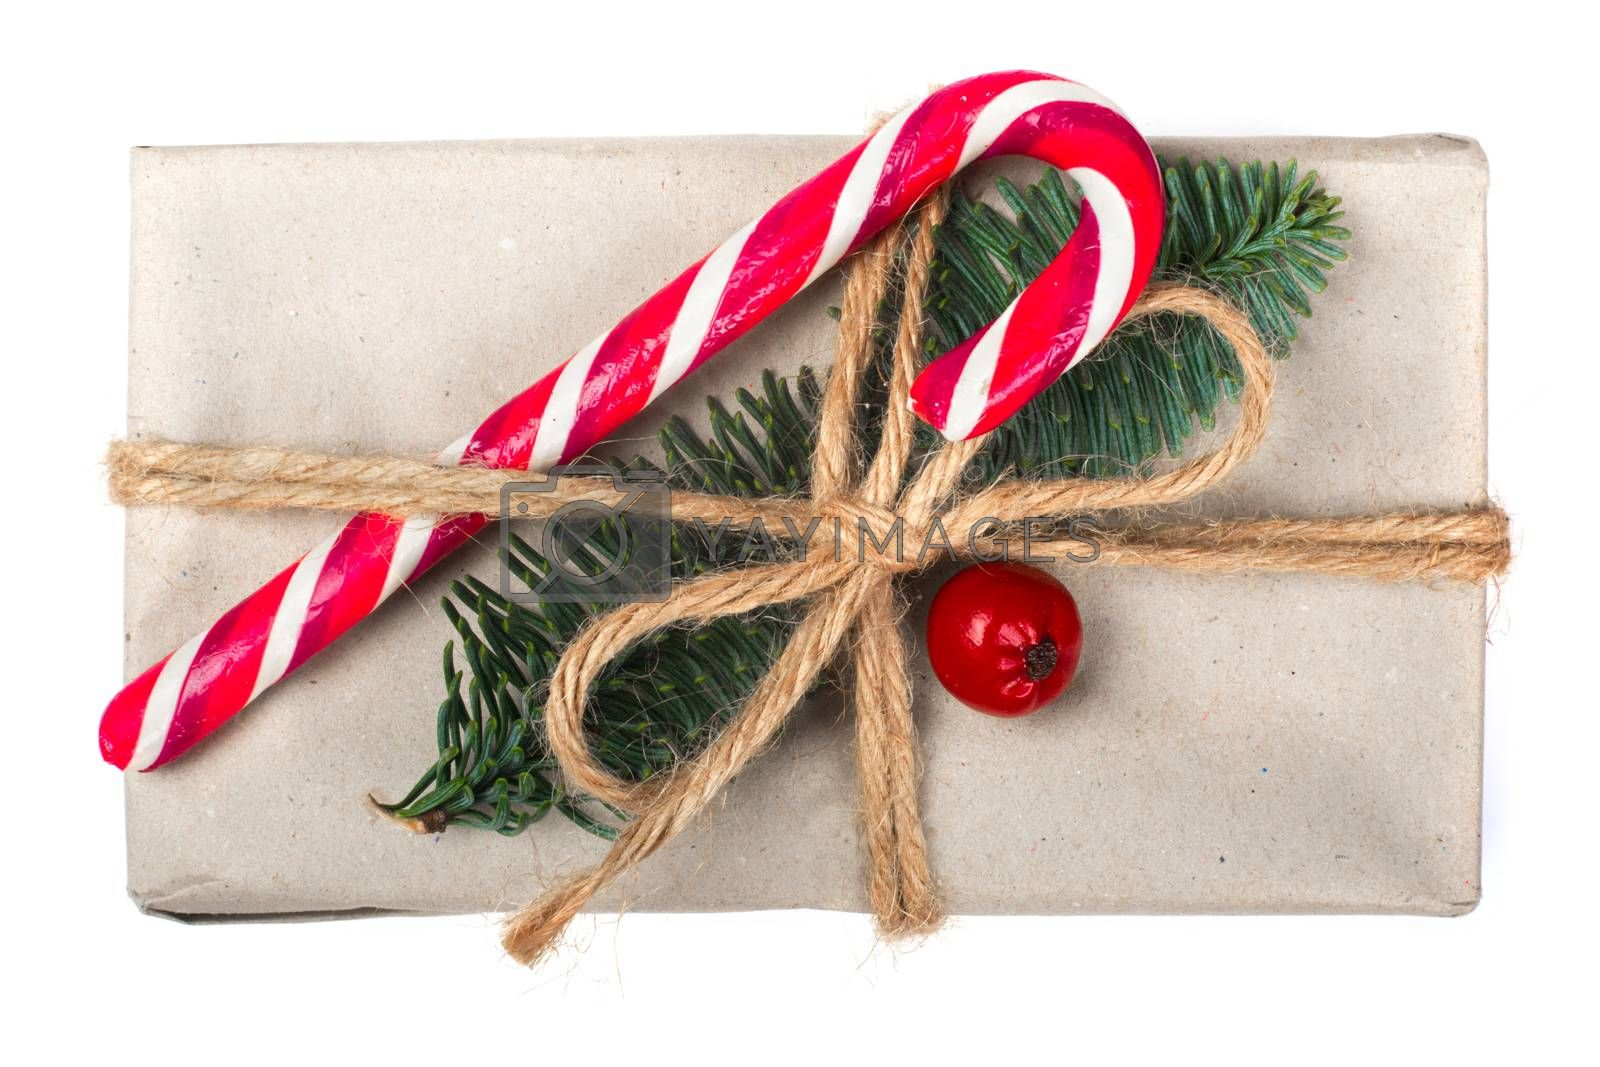 Wrapped vintage christmas gift box in craft paper with rope bow, striped candy cane fir tree twig and red berry isolated on white